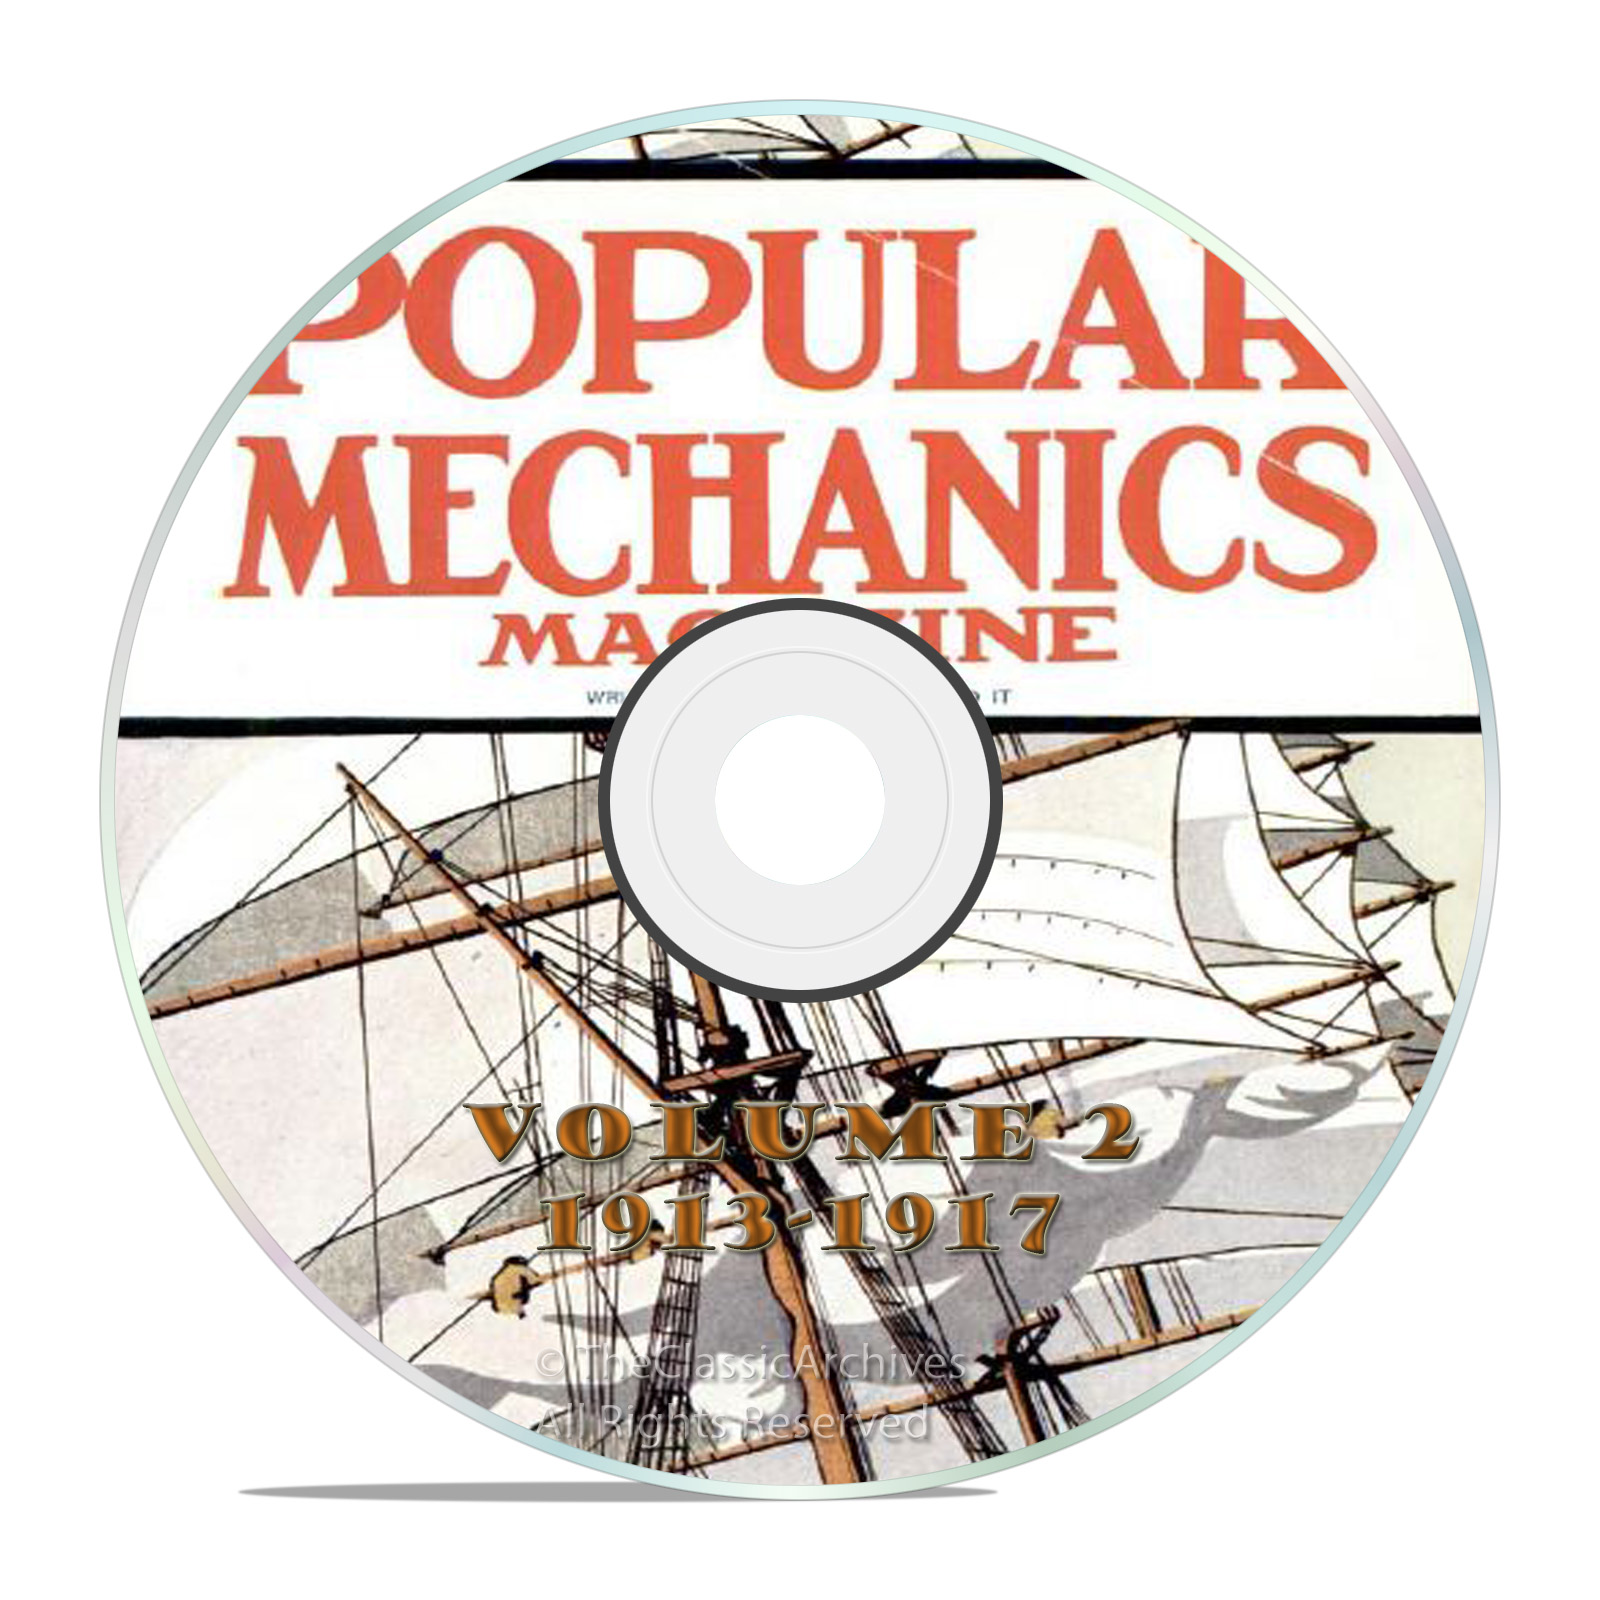 Vintage Popular Mechanics Magazine, Volume 2 DVD, 1913-1917, 48 issues